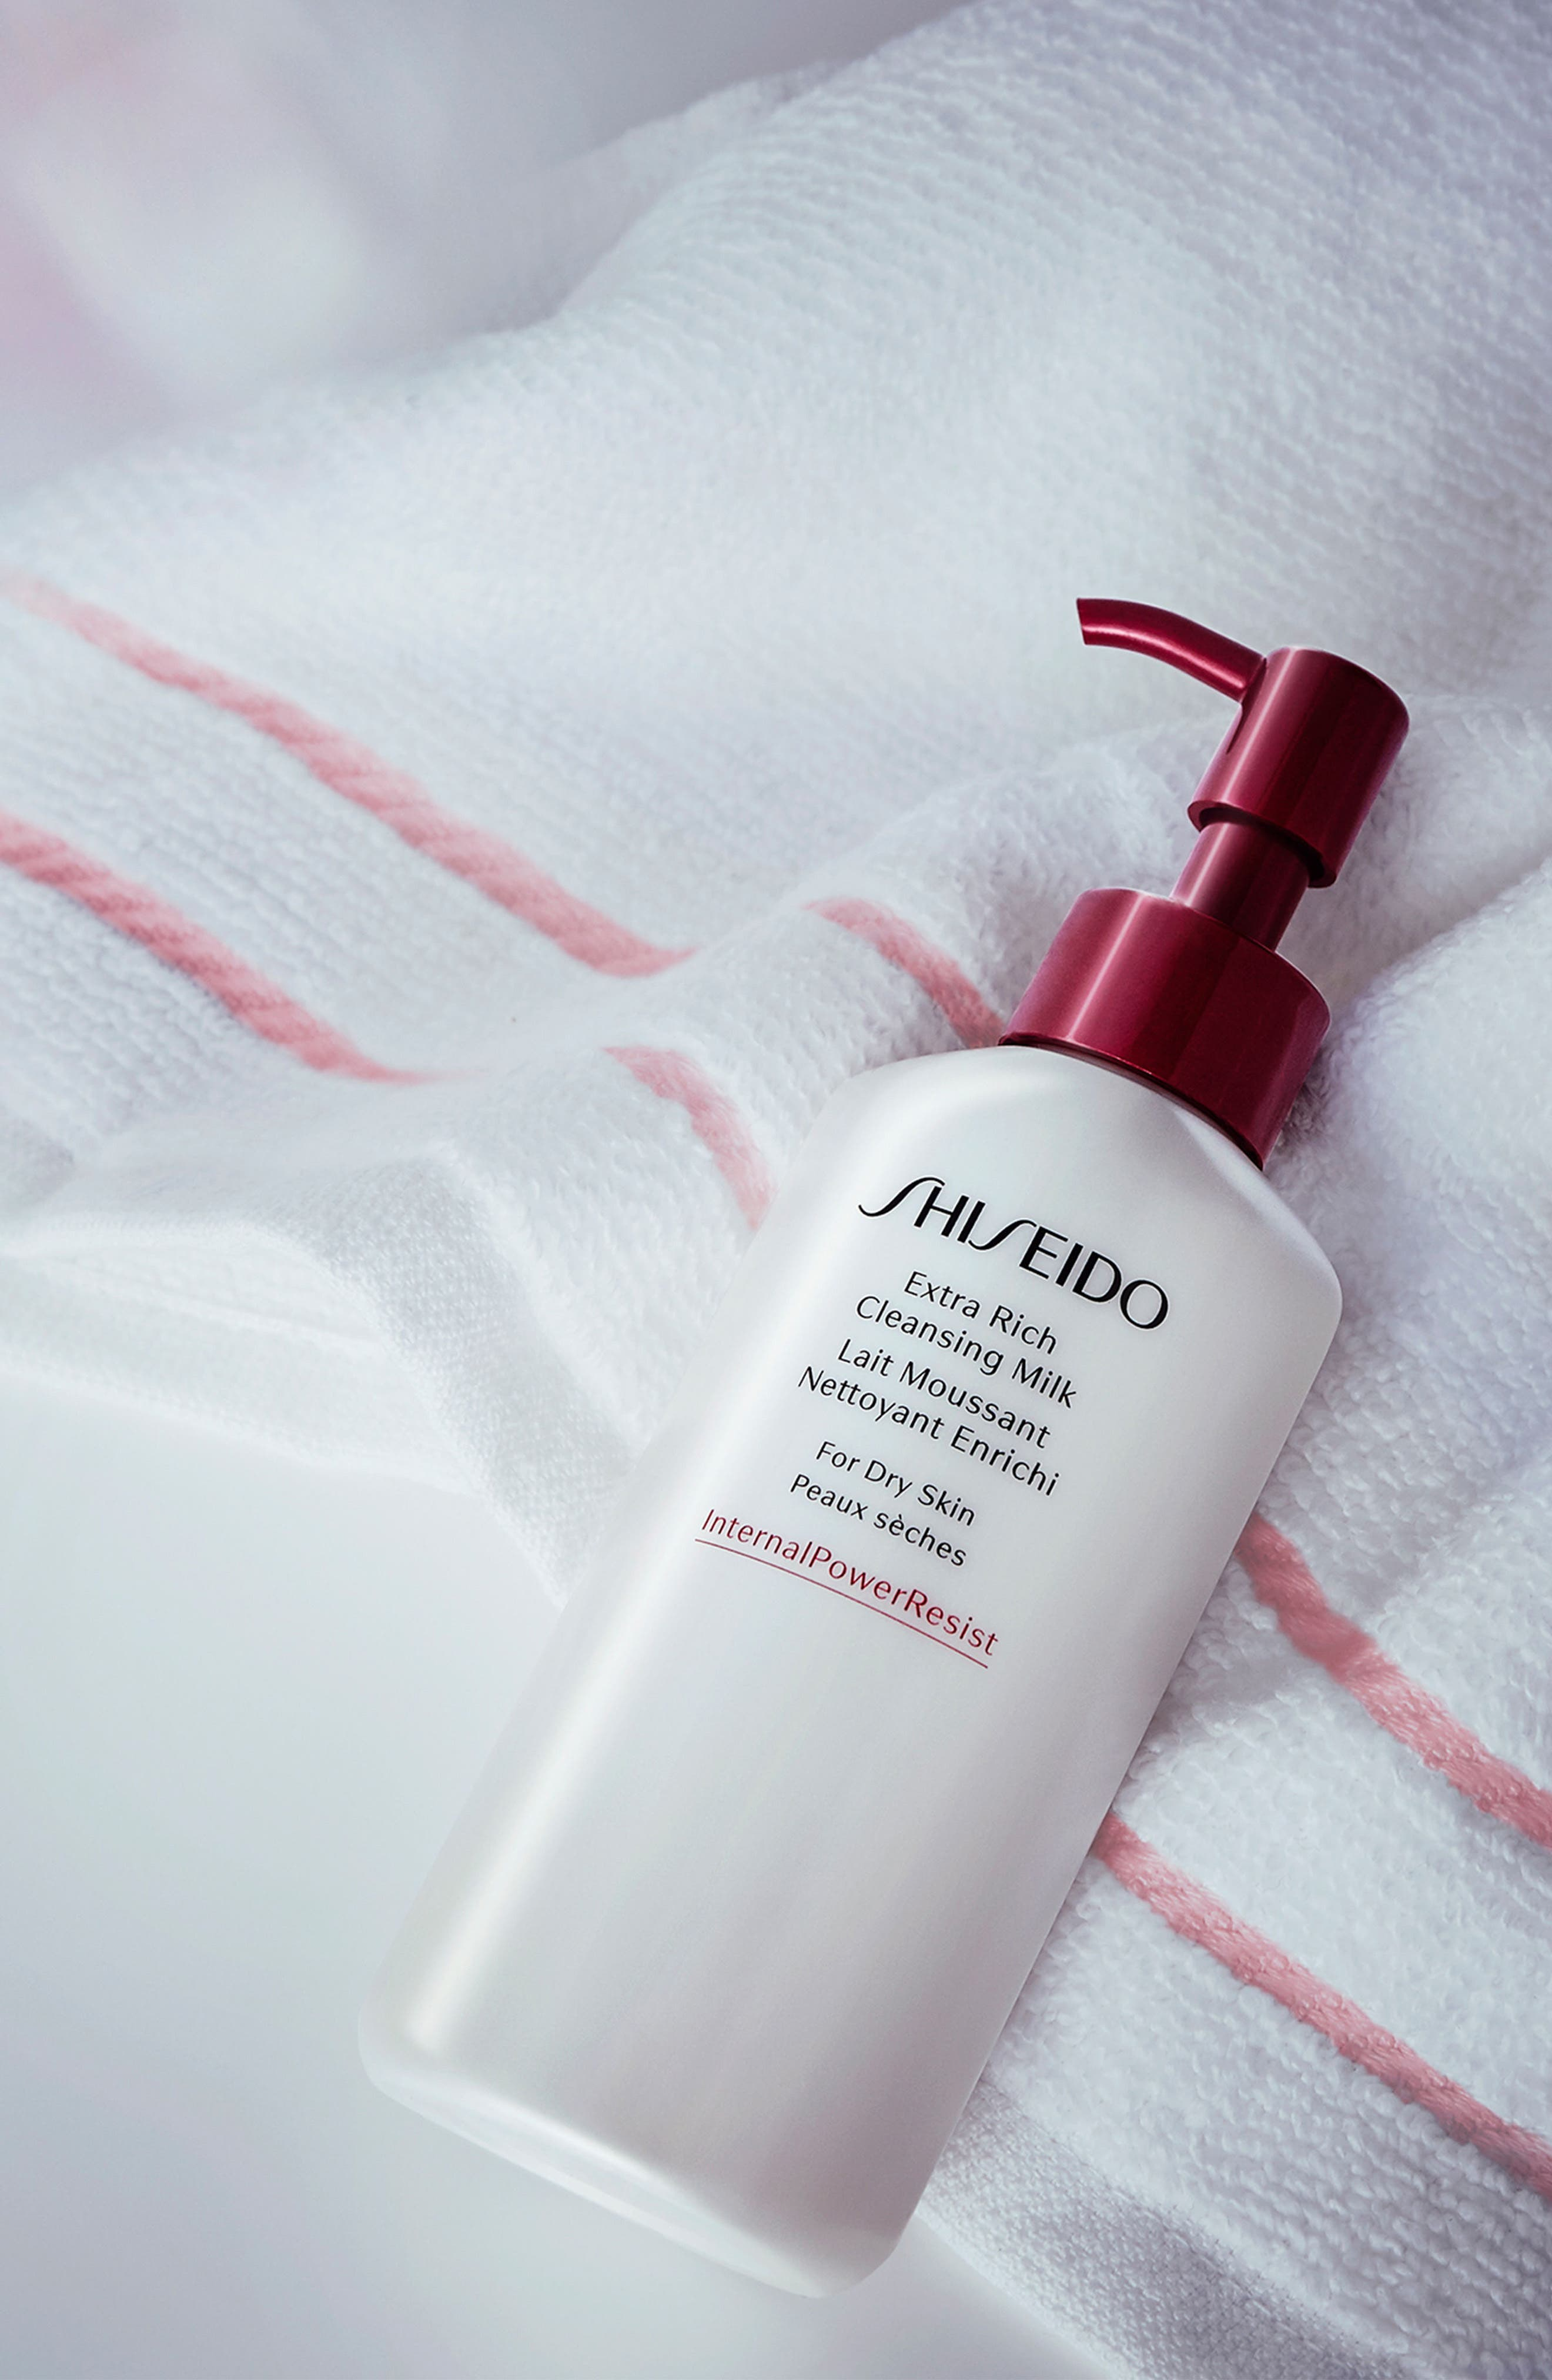 SHISEIDO, Extra Rich Cleansing Milk, Alternate thumbnail 6, color, NO COLOR